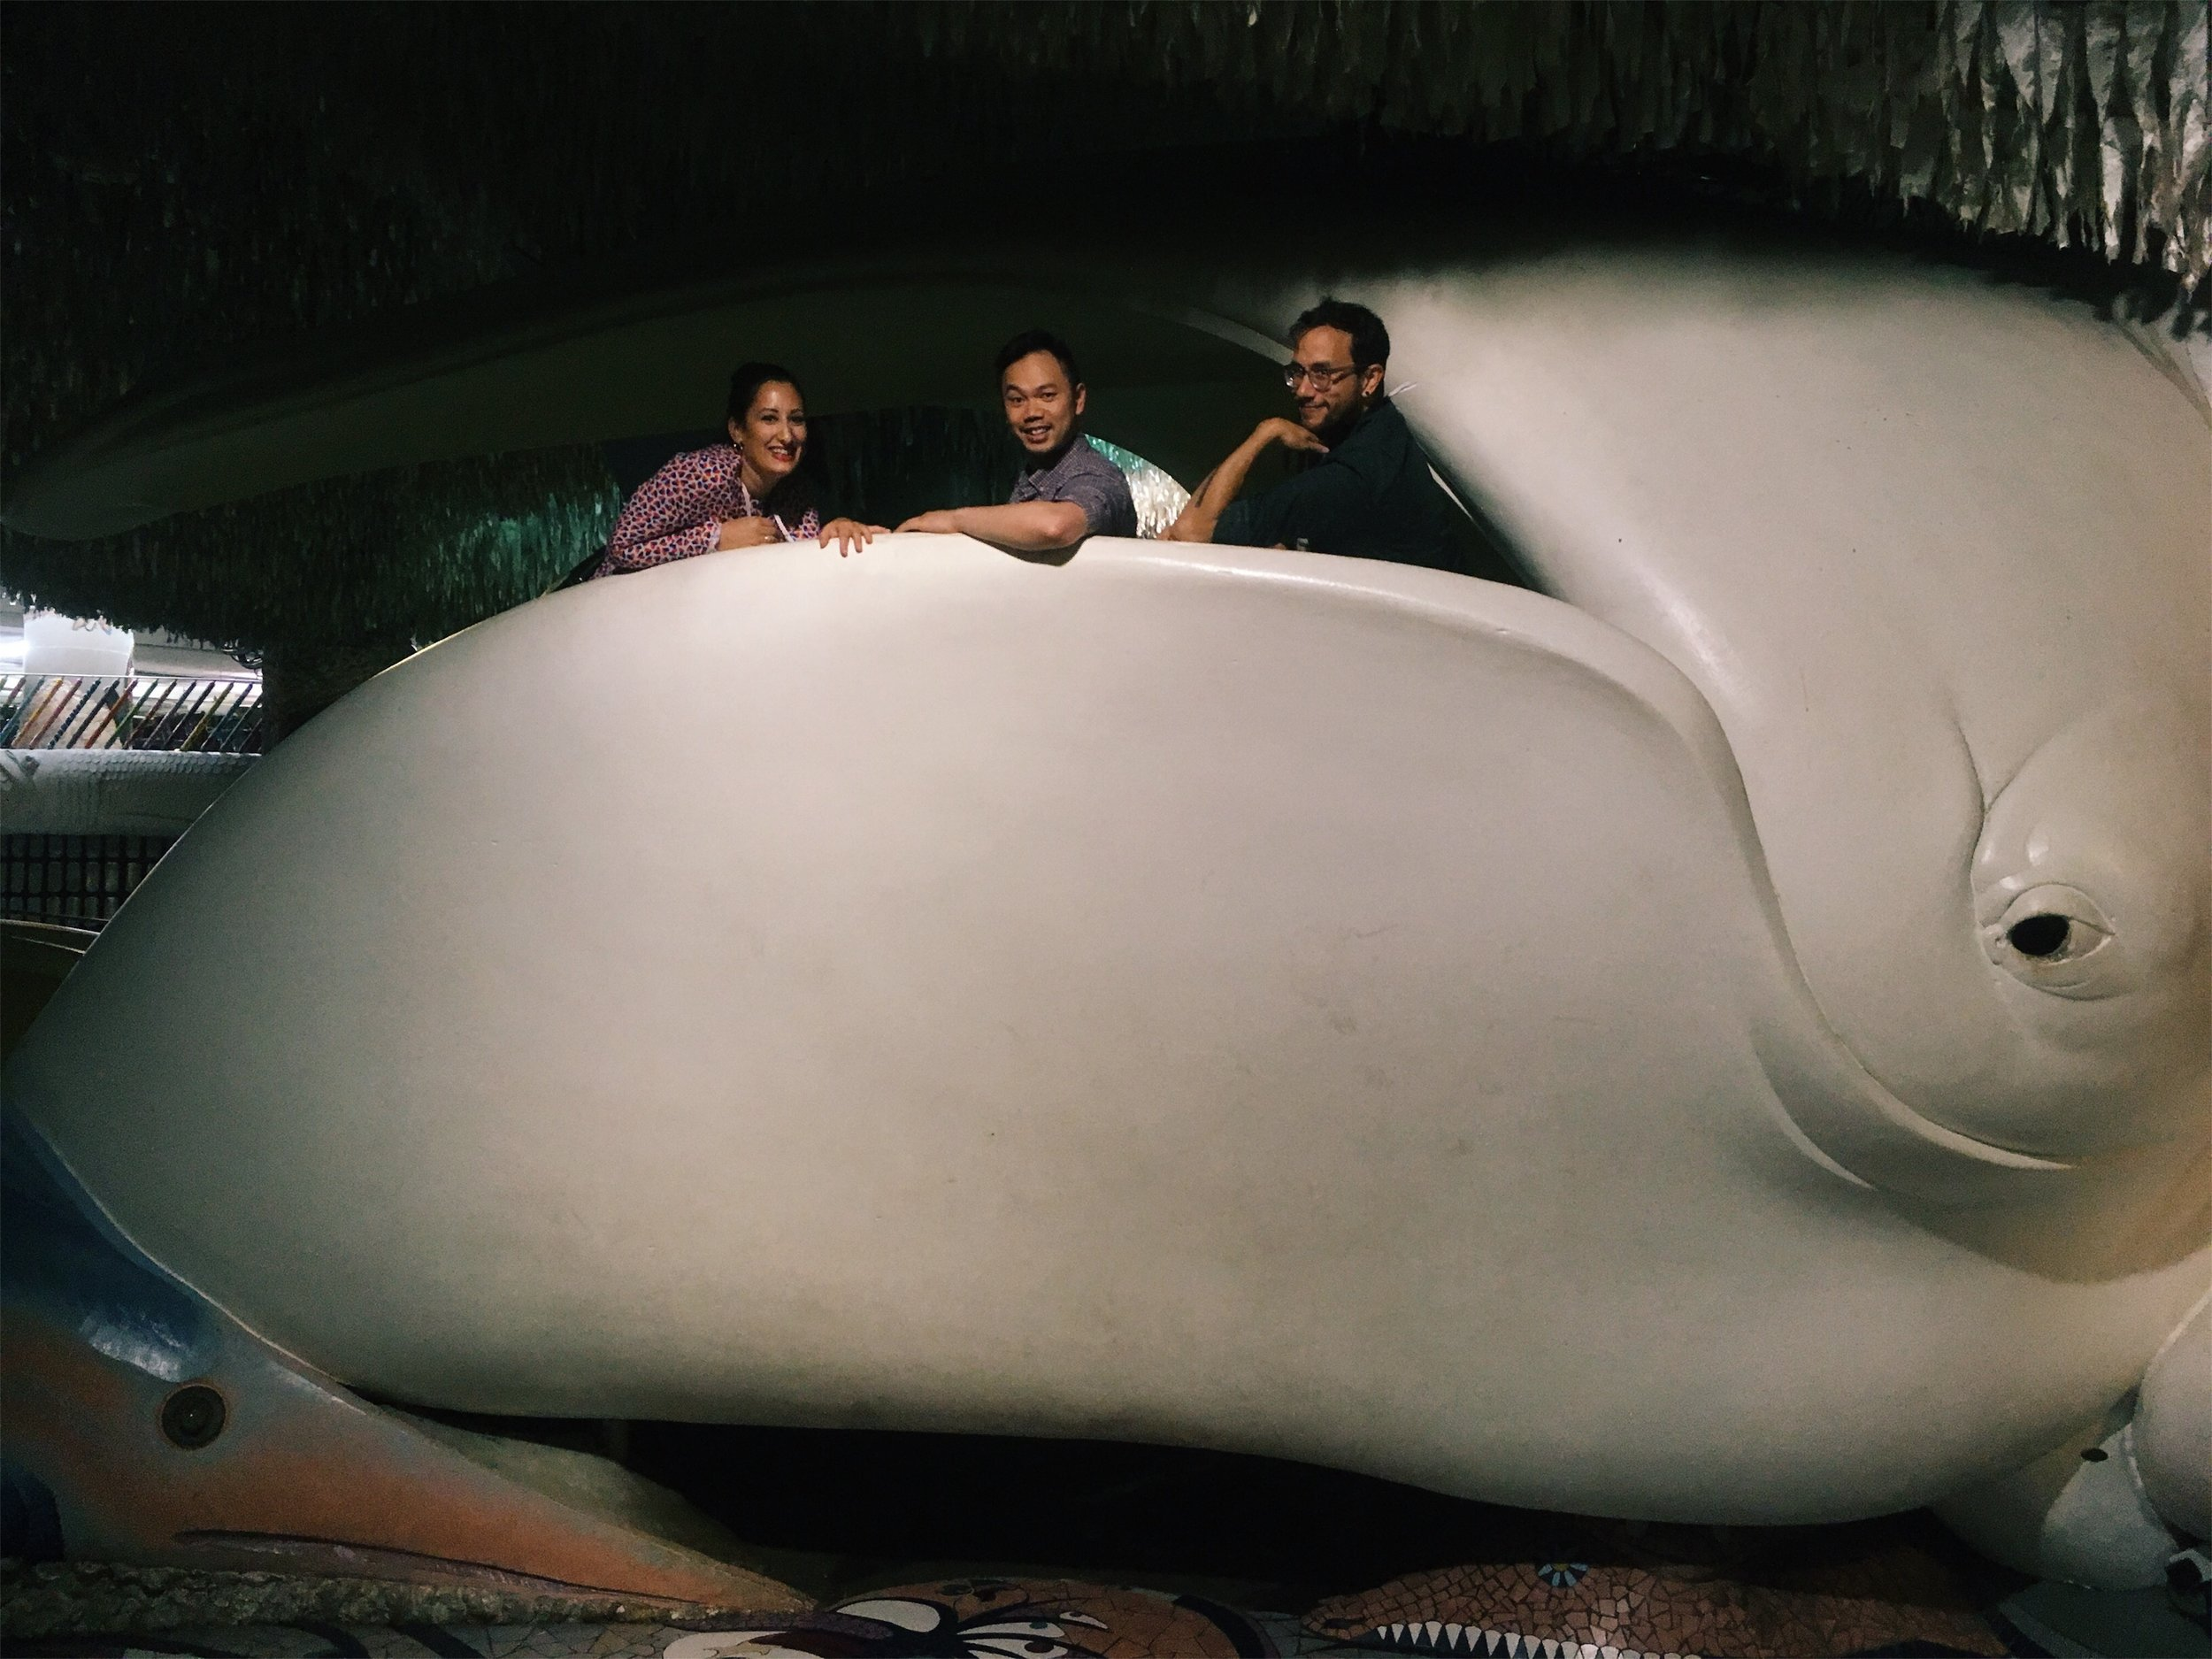 Me and the other Portland-based RLCs chilling in a whale at the City Museum in St. Louis.